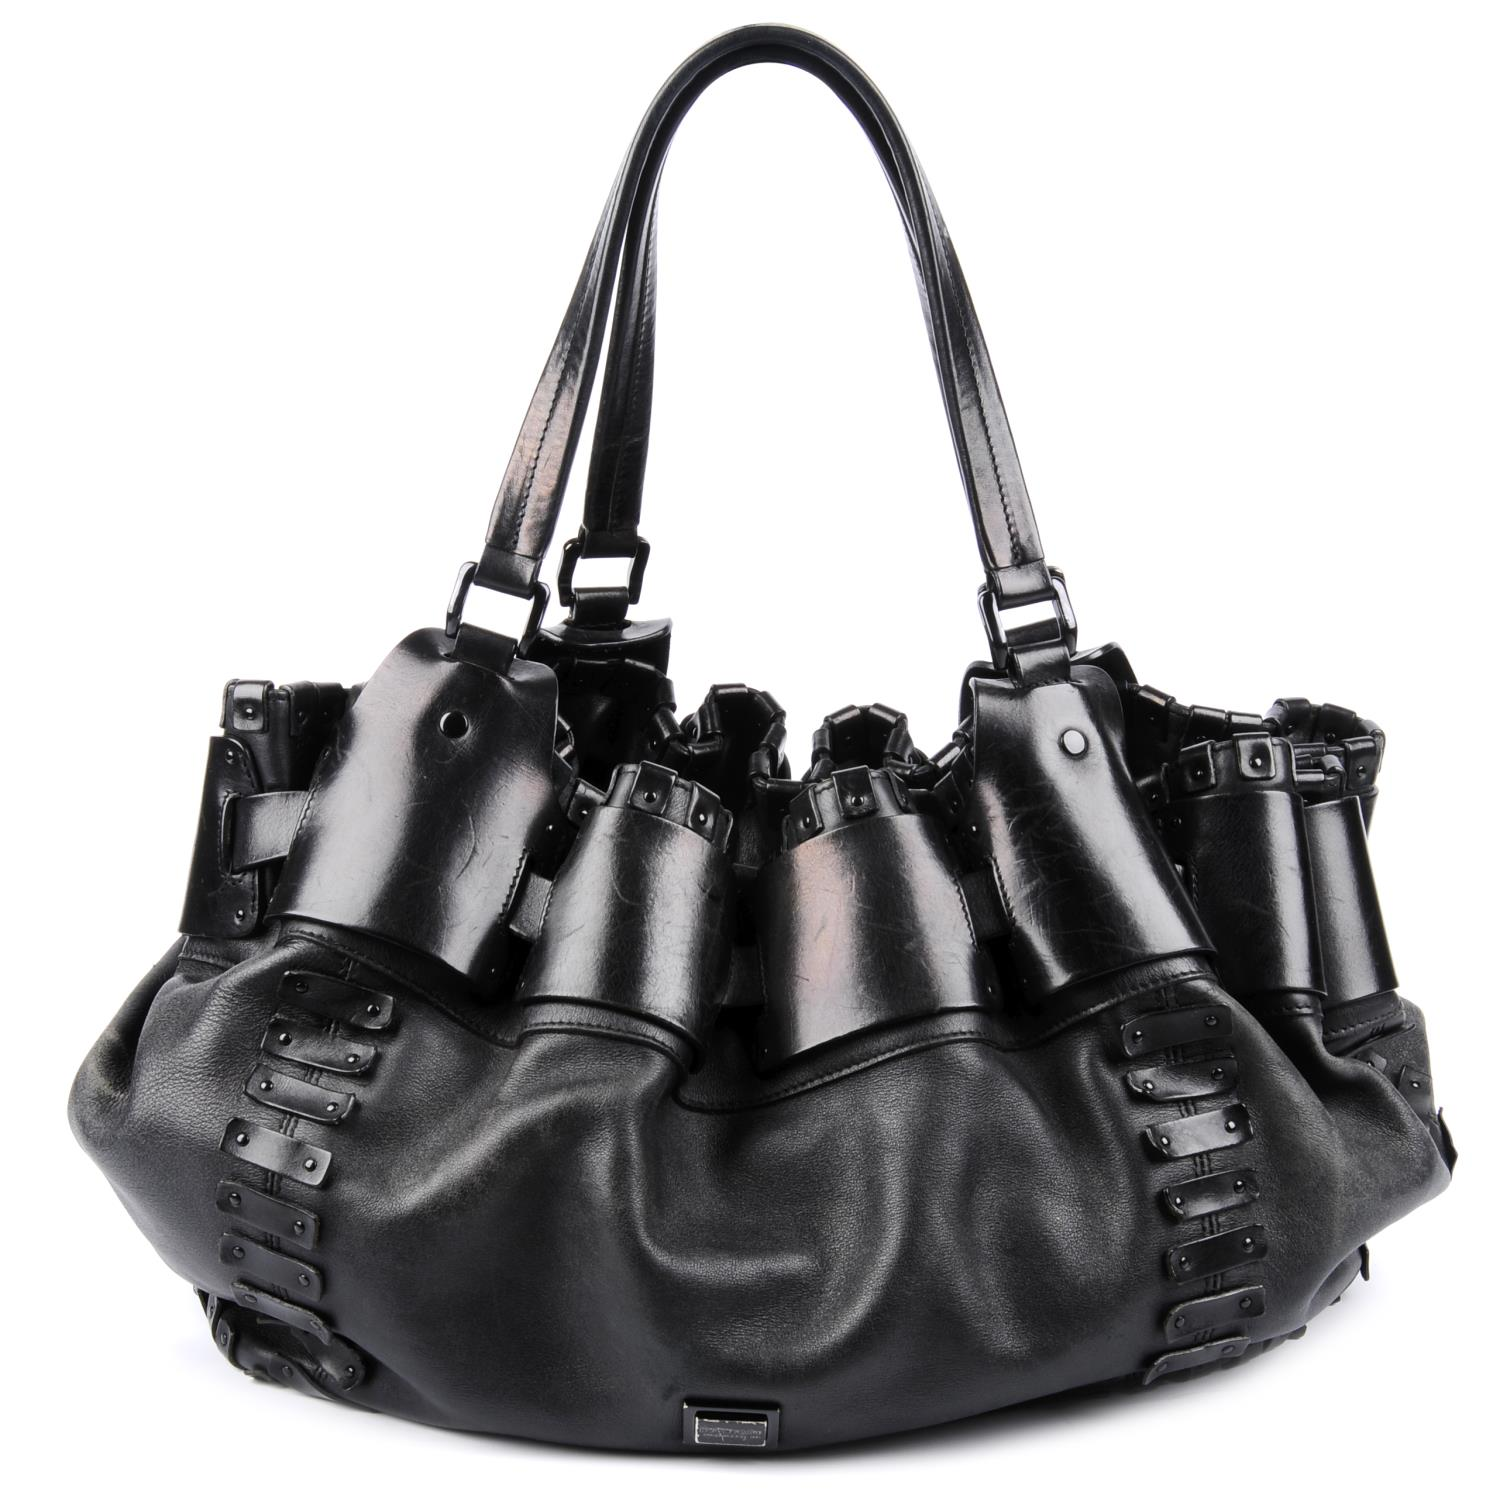 Lot 14 - BURBERRY - a black leather handbag.